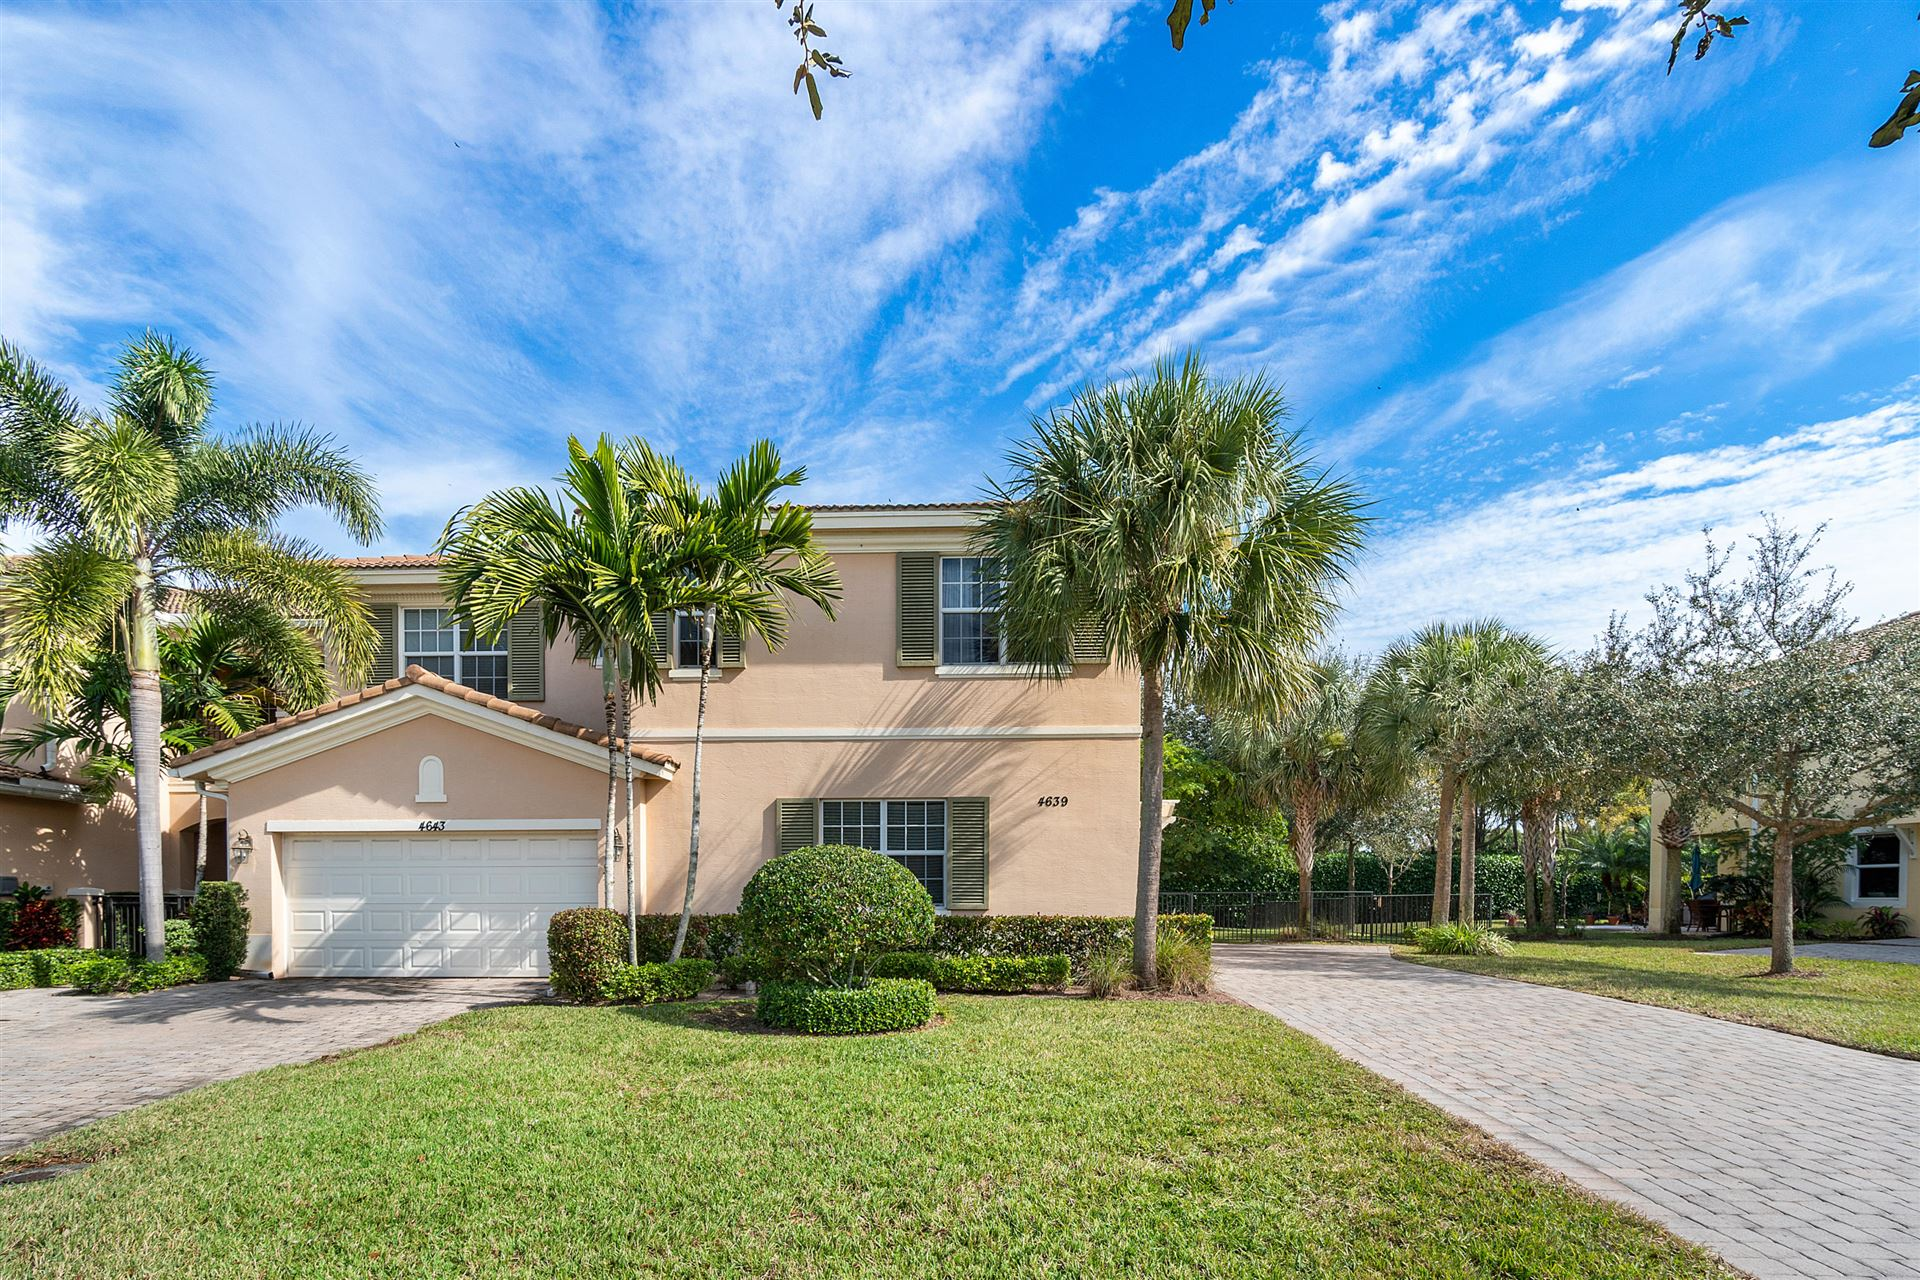 Photo of 4639 Cadiz Circle, Palm Beach Gardens, FL 33418 (MLS # RX-10685434)